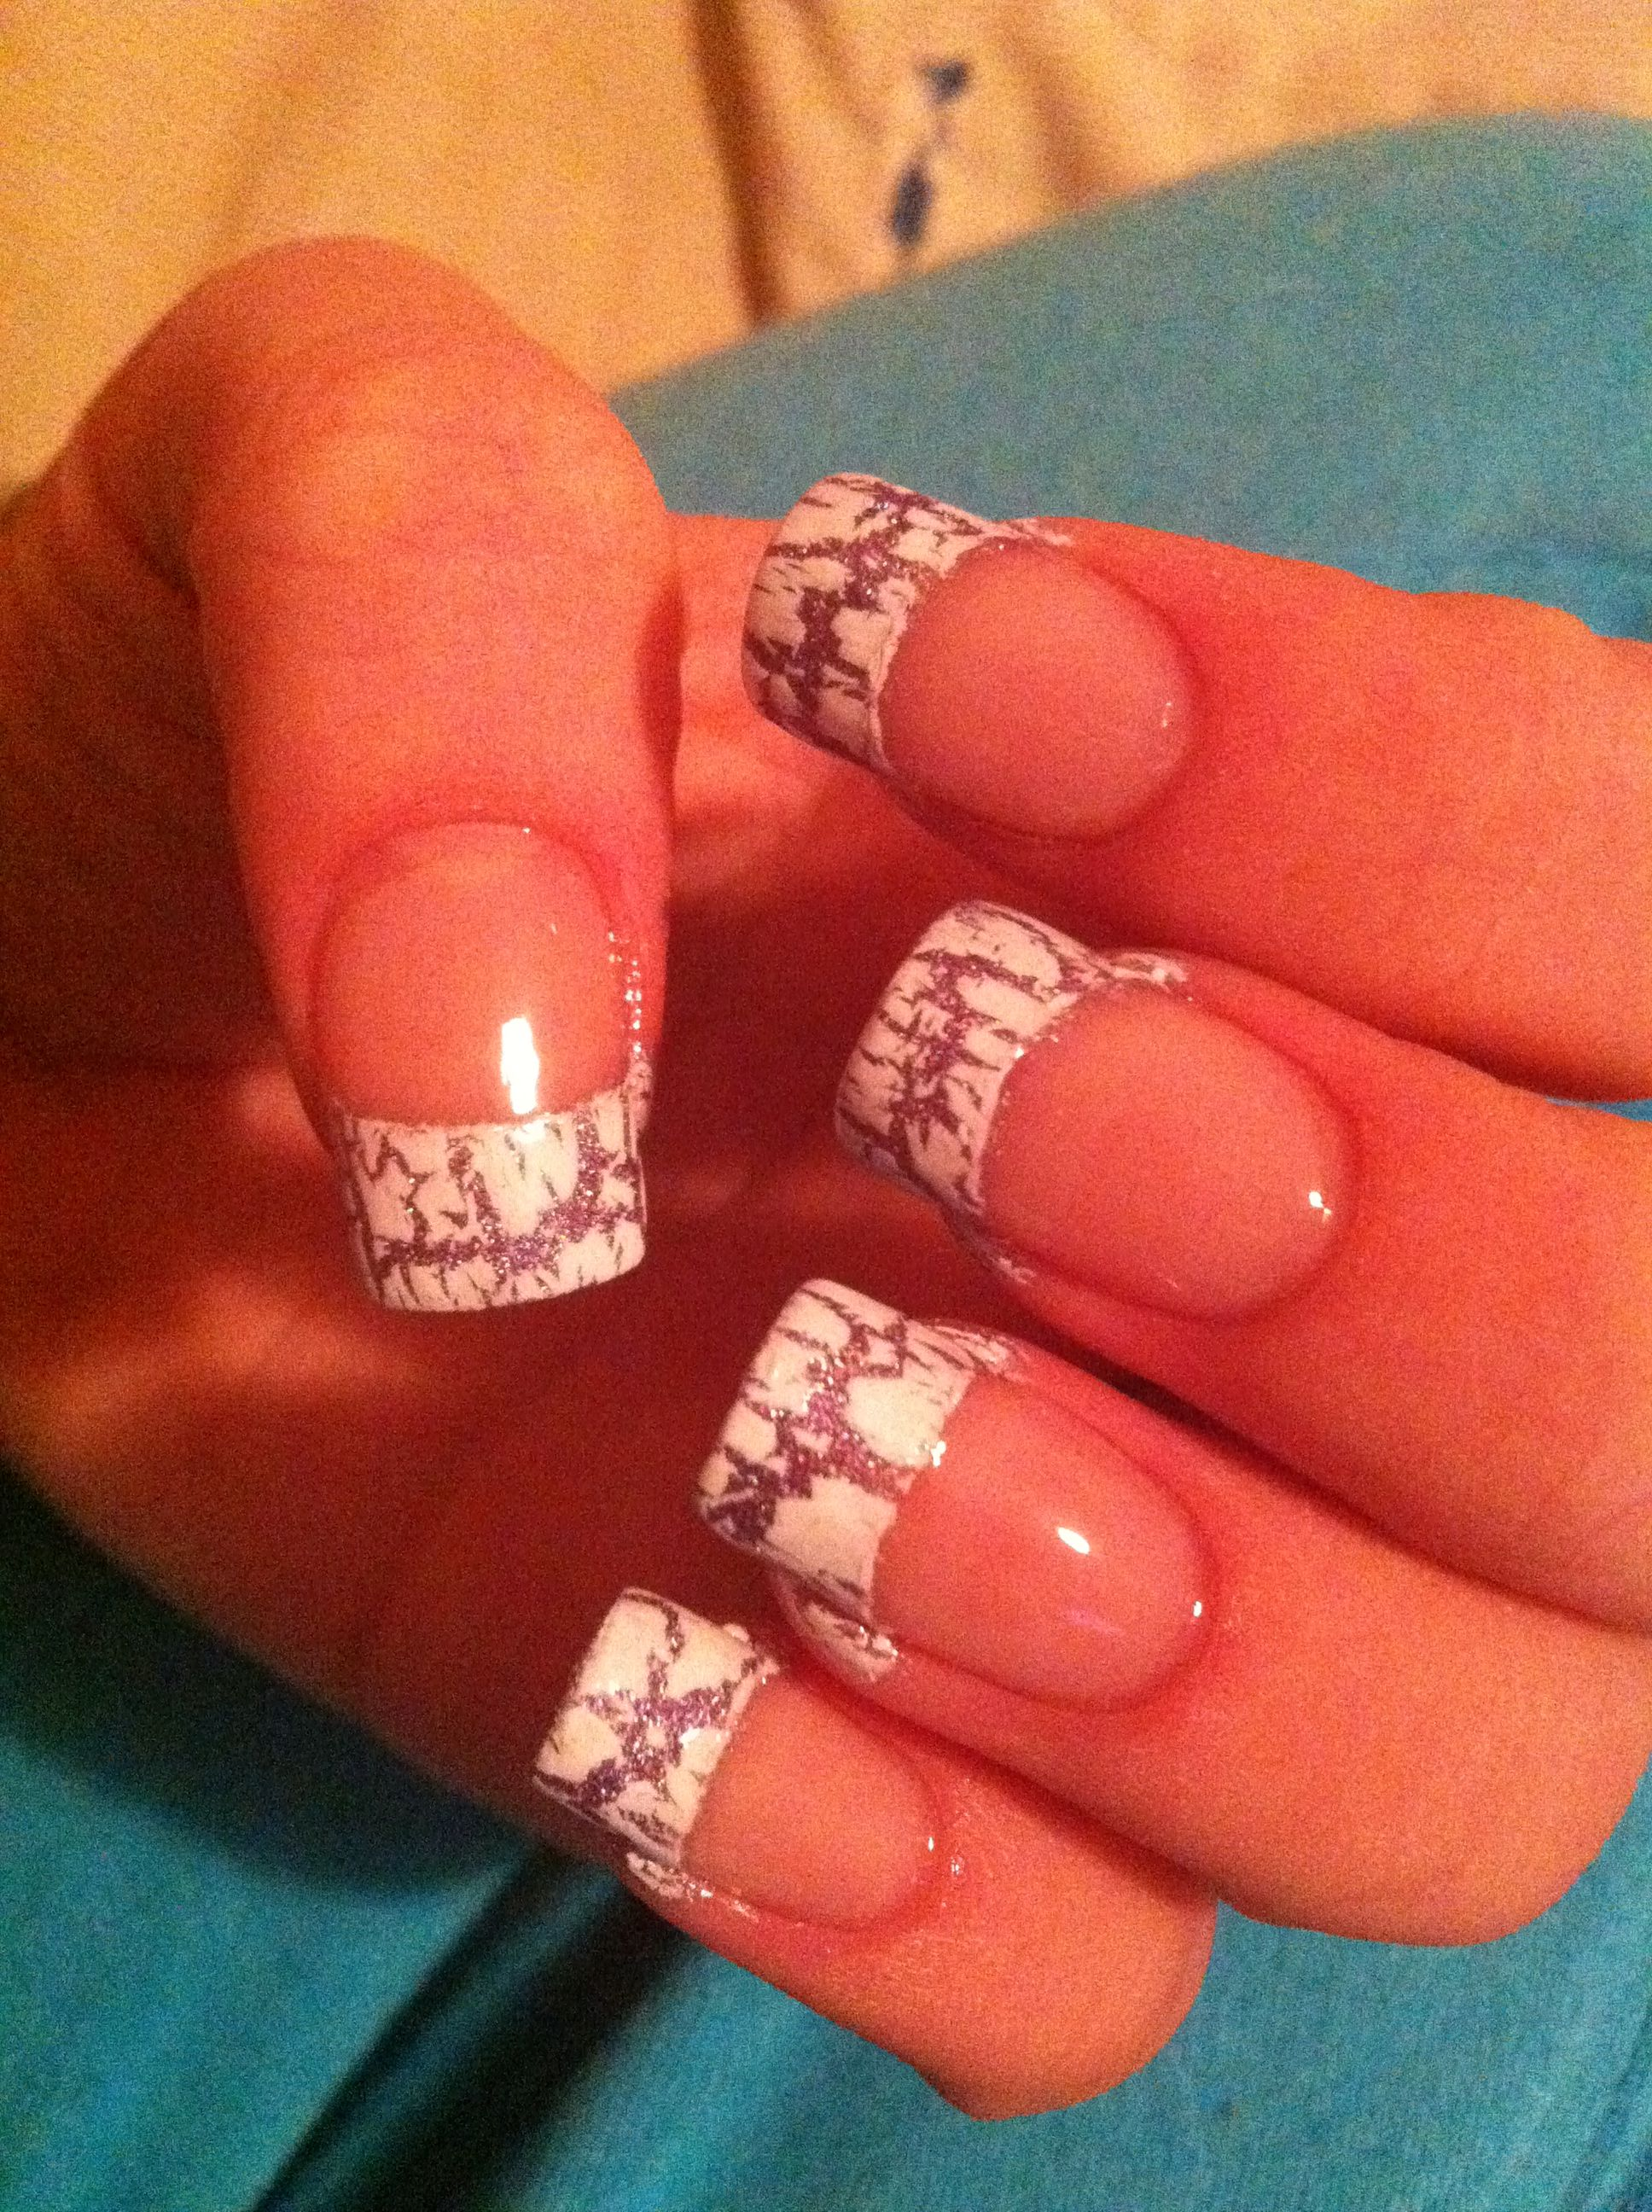 Purple And White Crackle Nail Tip Design Art Nail Designs By Me